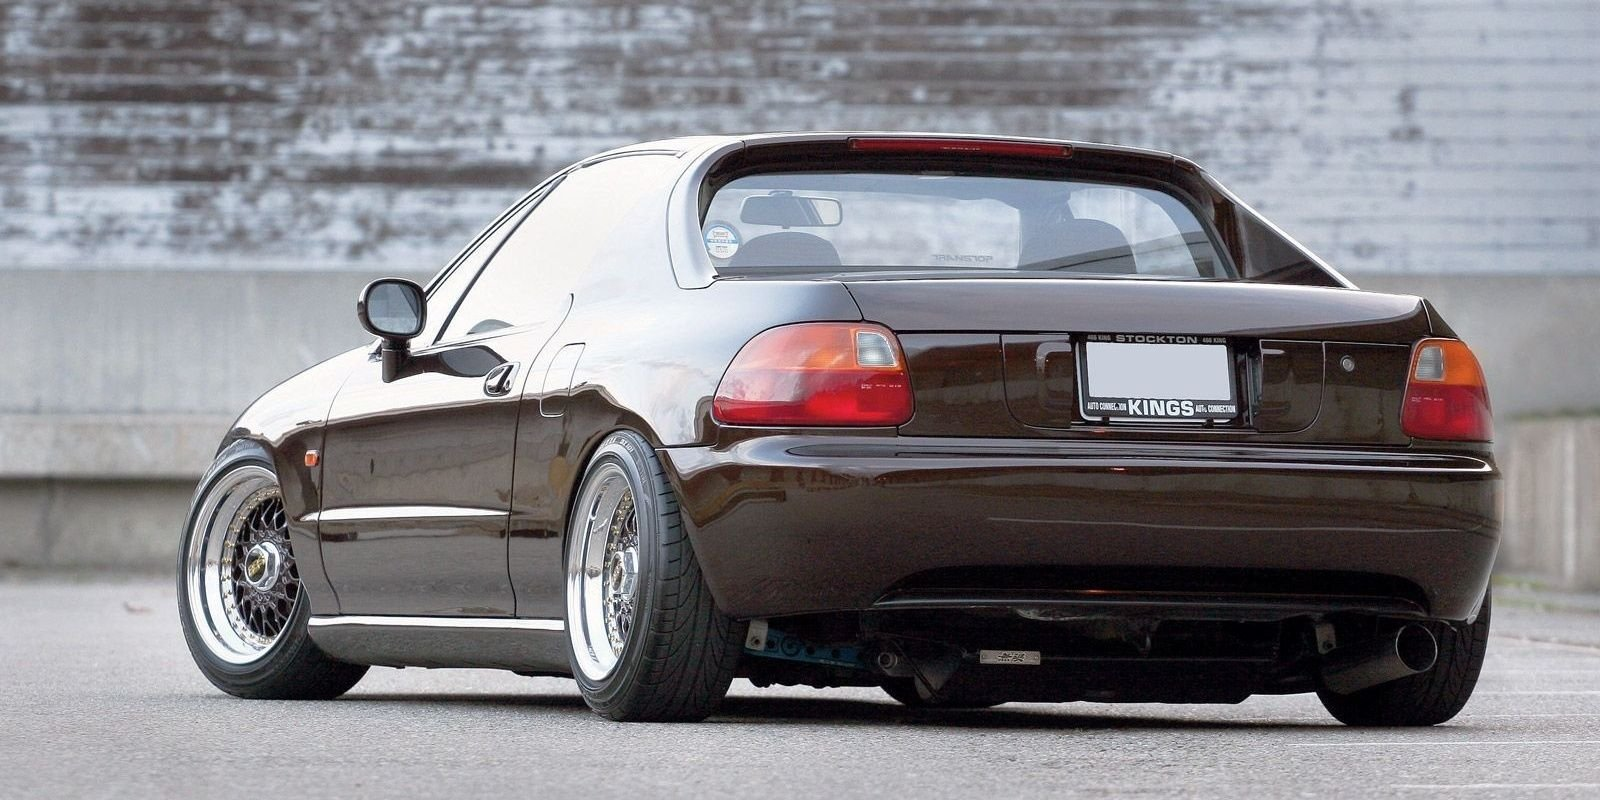 9 Least Reliable JDM Sports Cars To Avoid (1 That's Built Like A Tank)